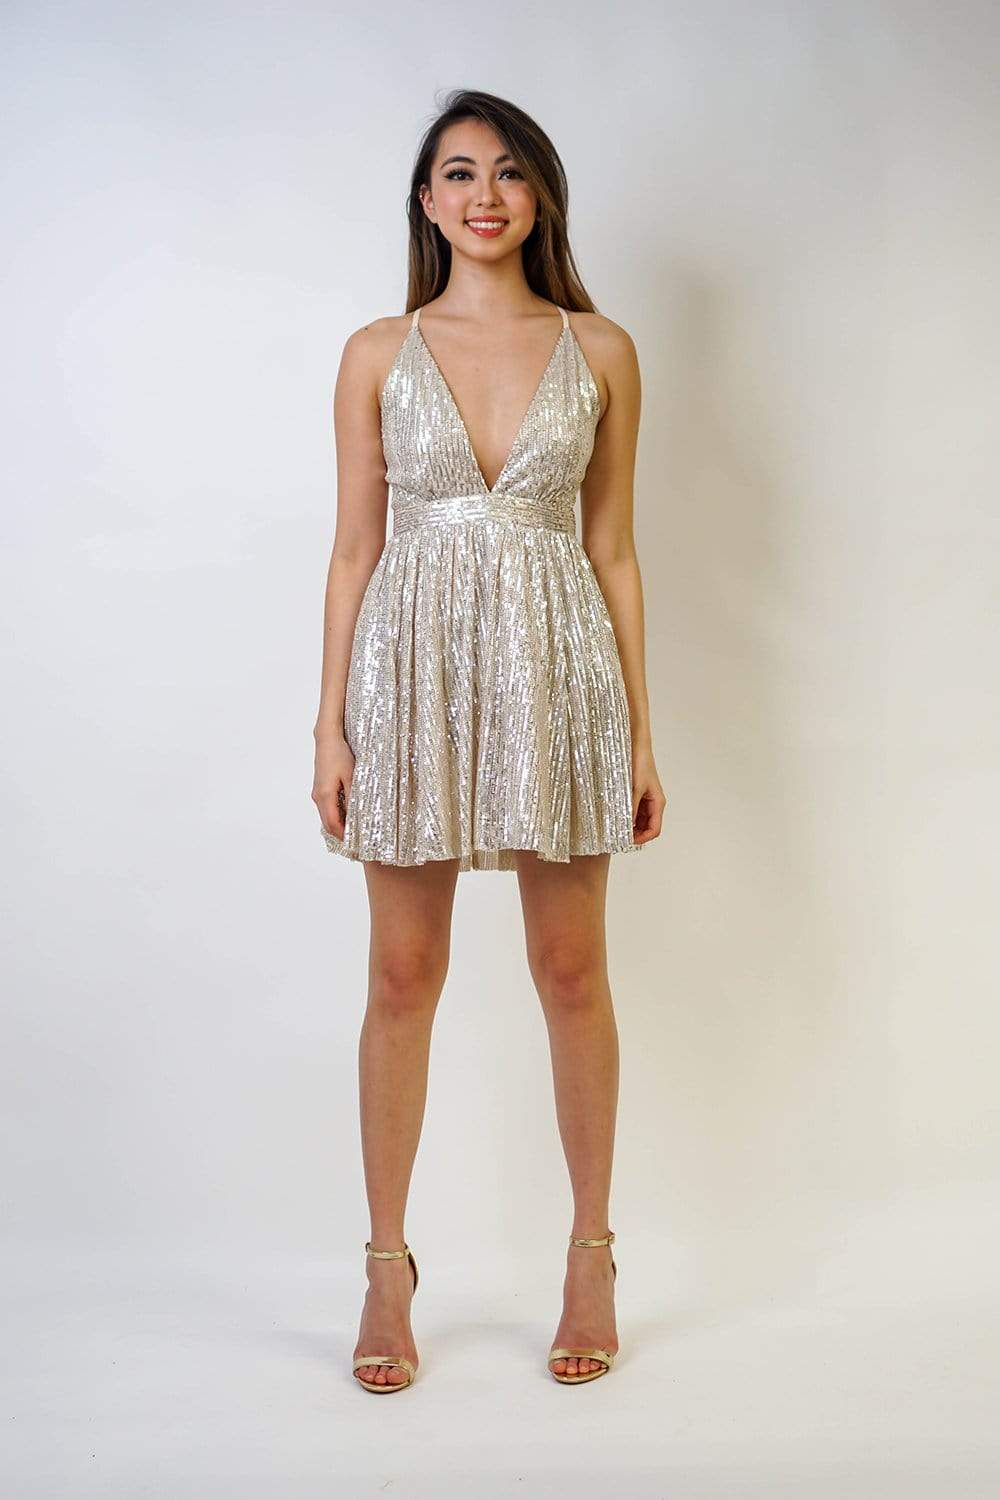 DRESS Sparkle Sequins Tutu Mini Dress - Chloe Dao